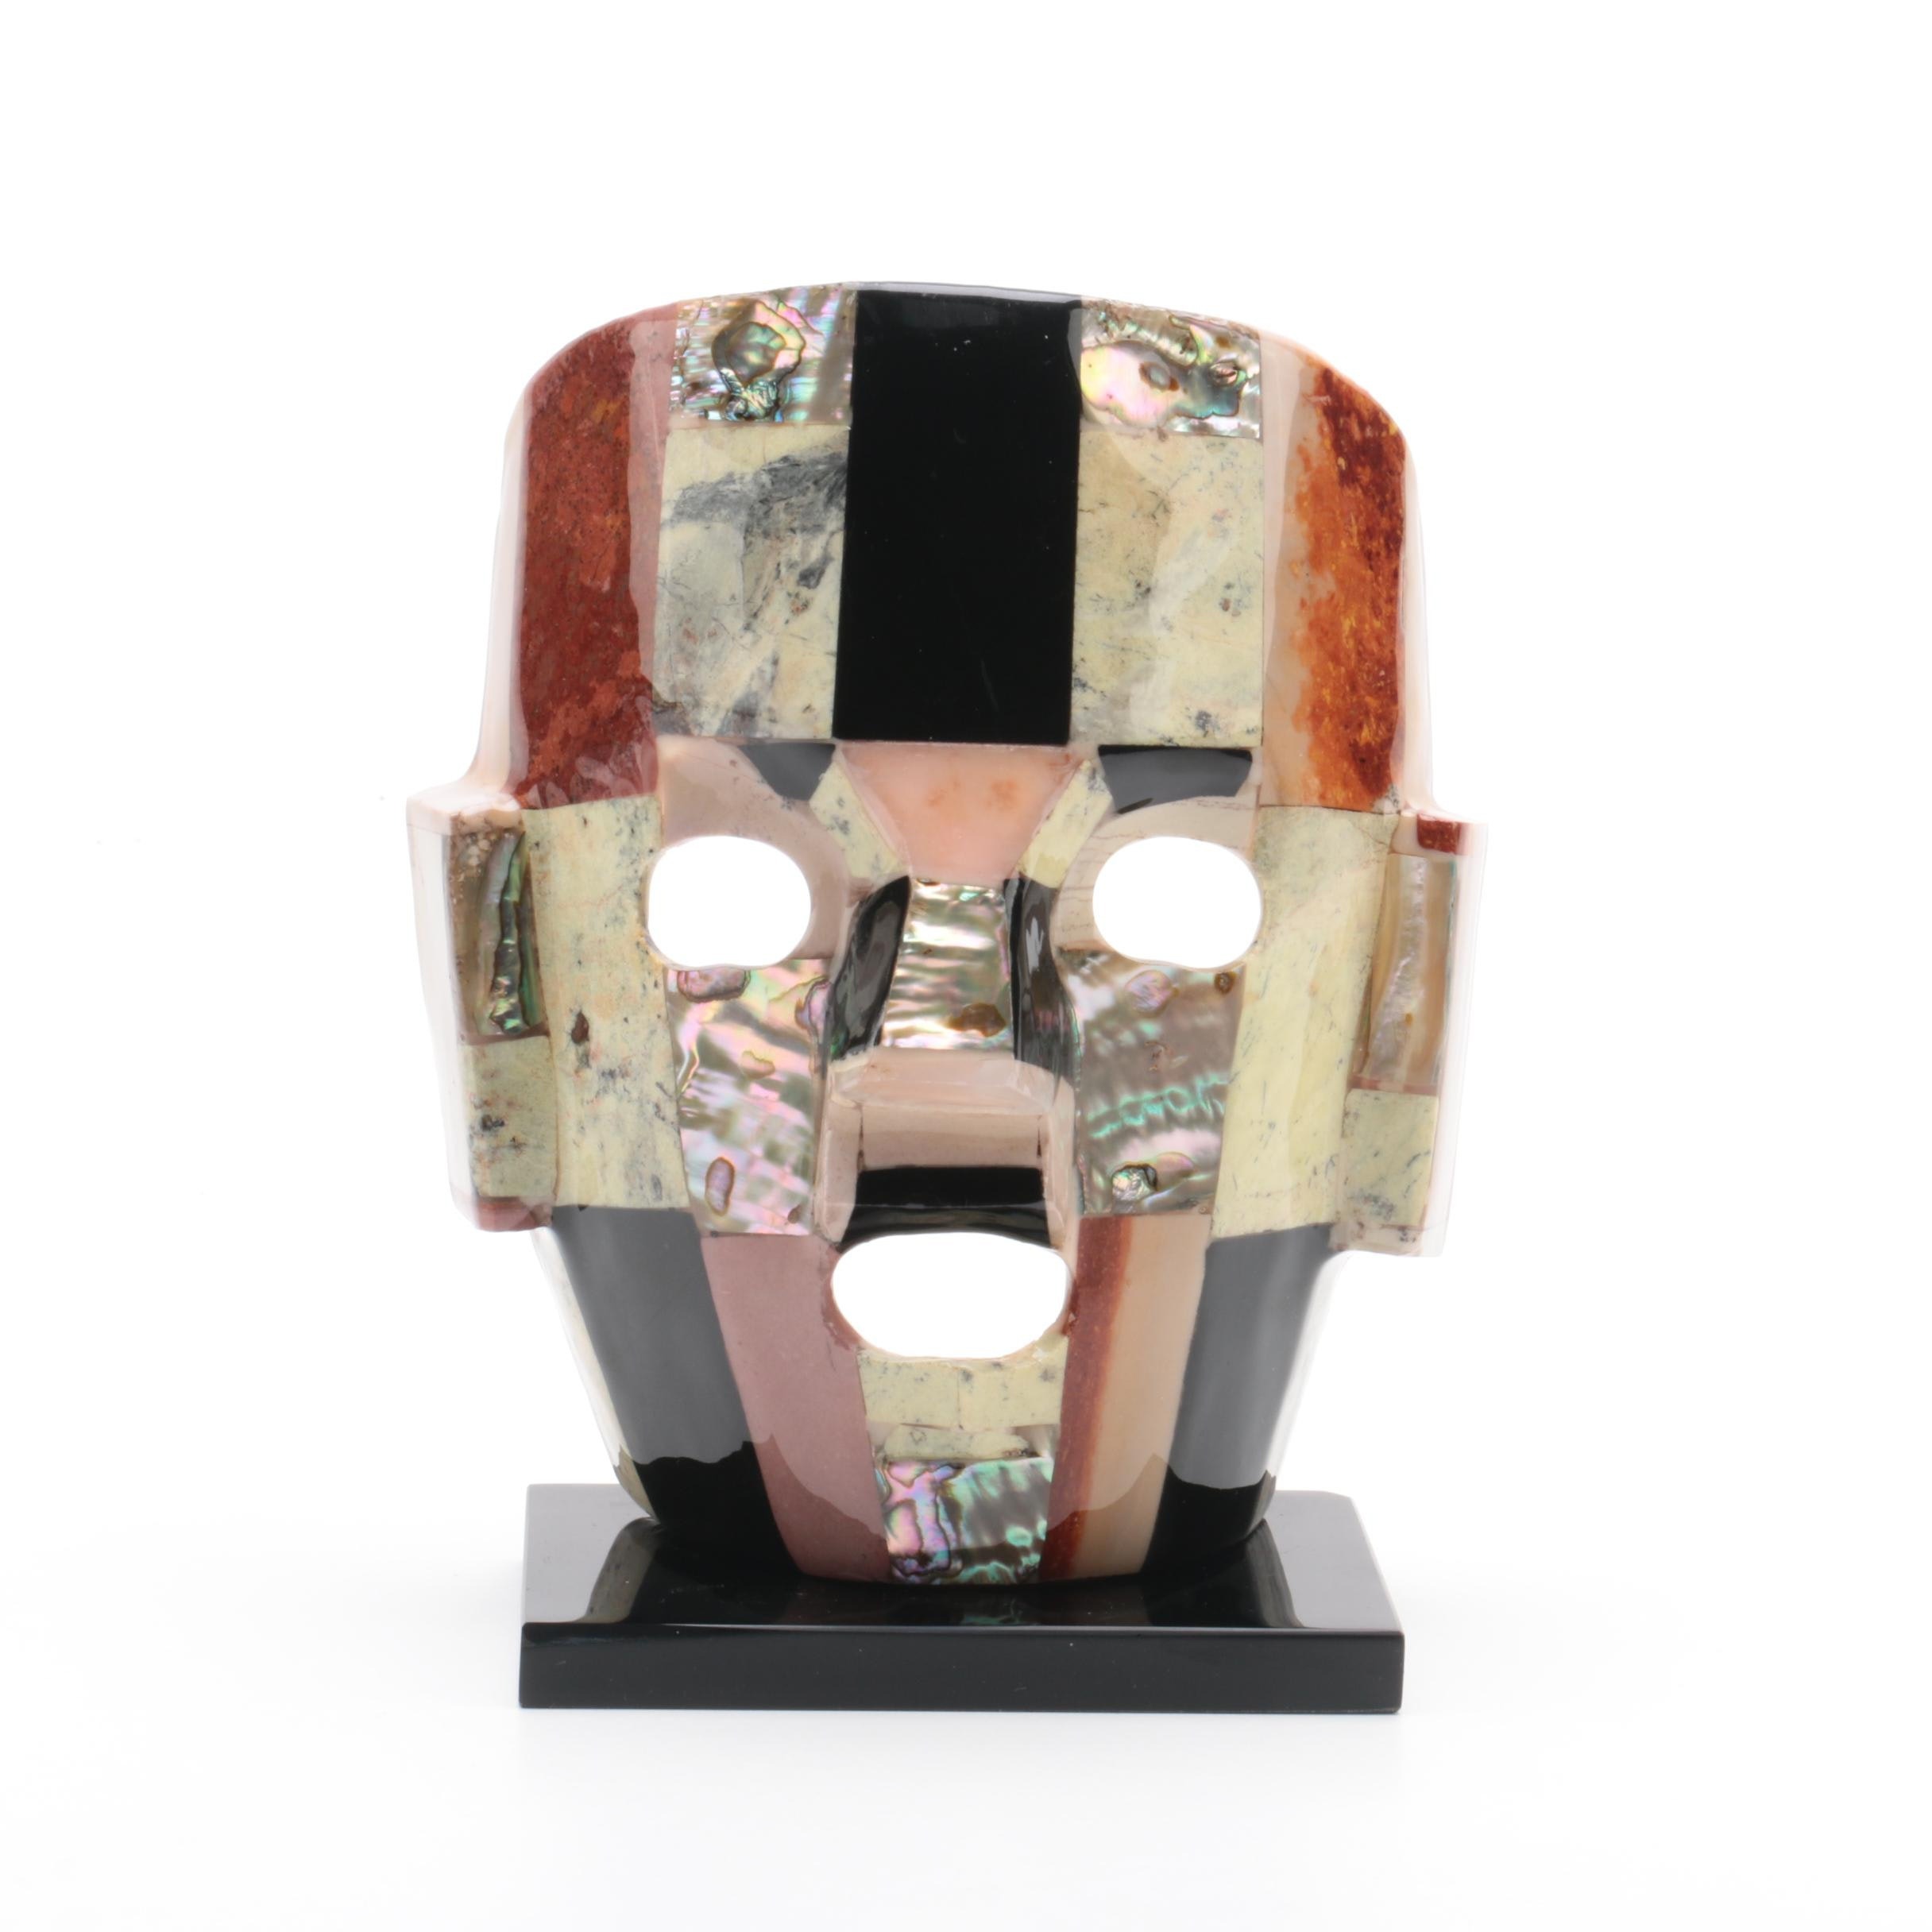 Mesoamerican-Inspired Abalone, Onyx, Agate and Marble Mask Sculpture